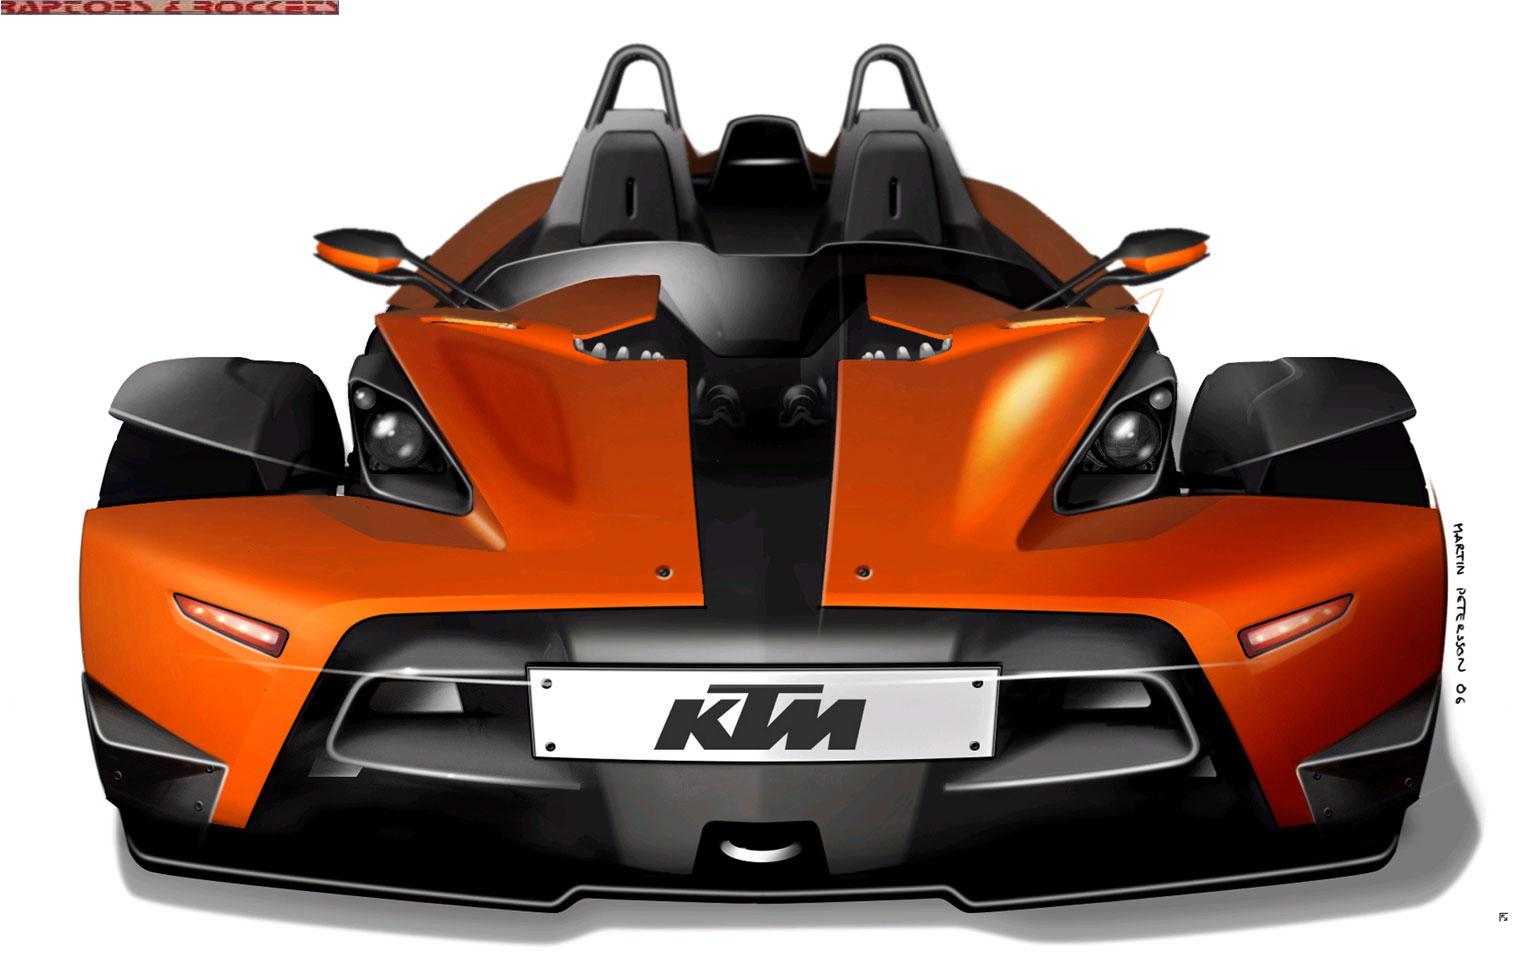 Ford Gt Car Wallpaper Hd Ktm X Bow Photos News Reviews Specs Car Listings